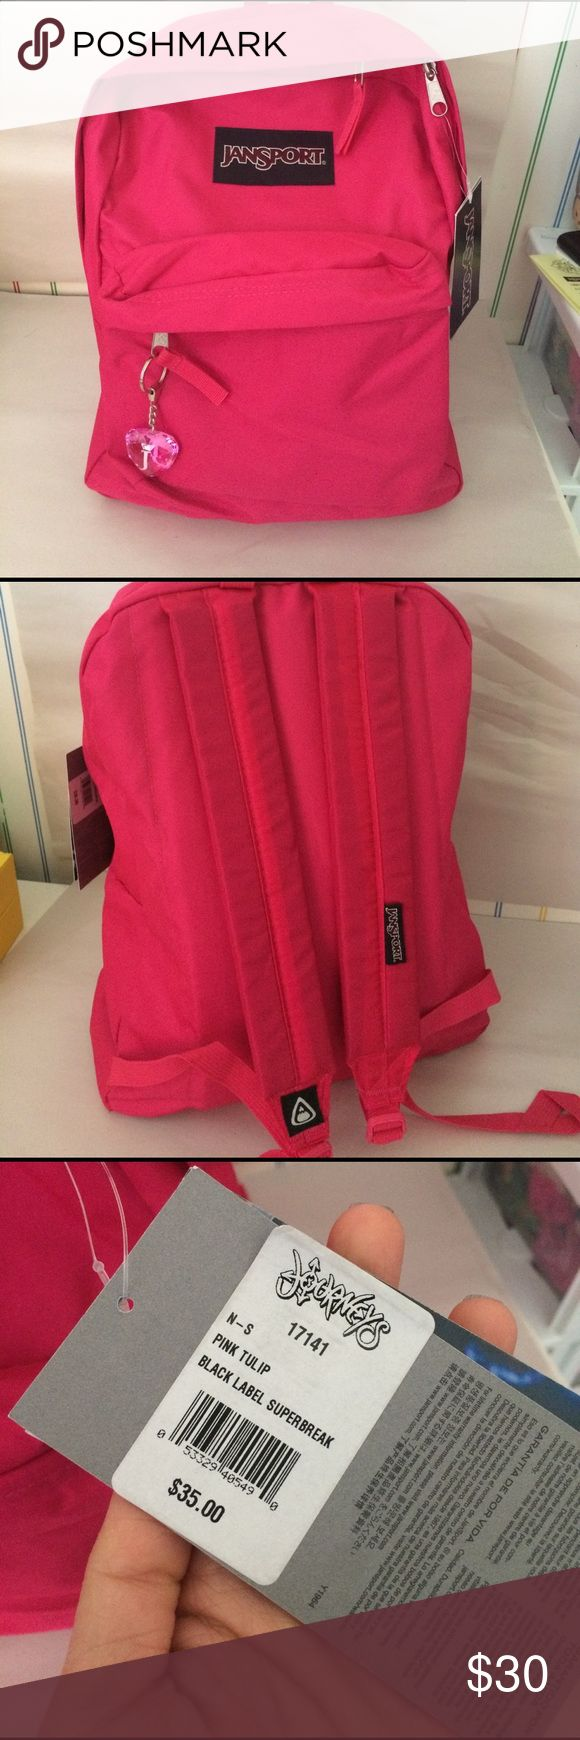 Jansport Superbreak A brand new pink Jansport backpack . Adjustable straps and an outer pocket. Comes with a life time warranty. Jansport Bags Backpacks